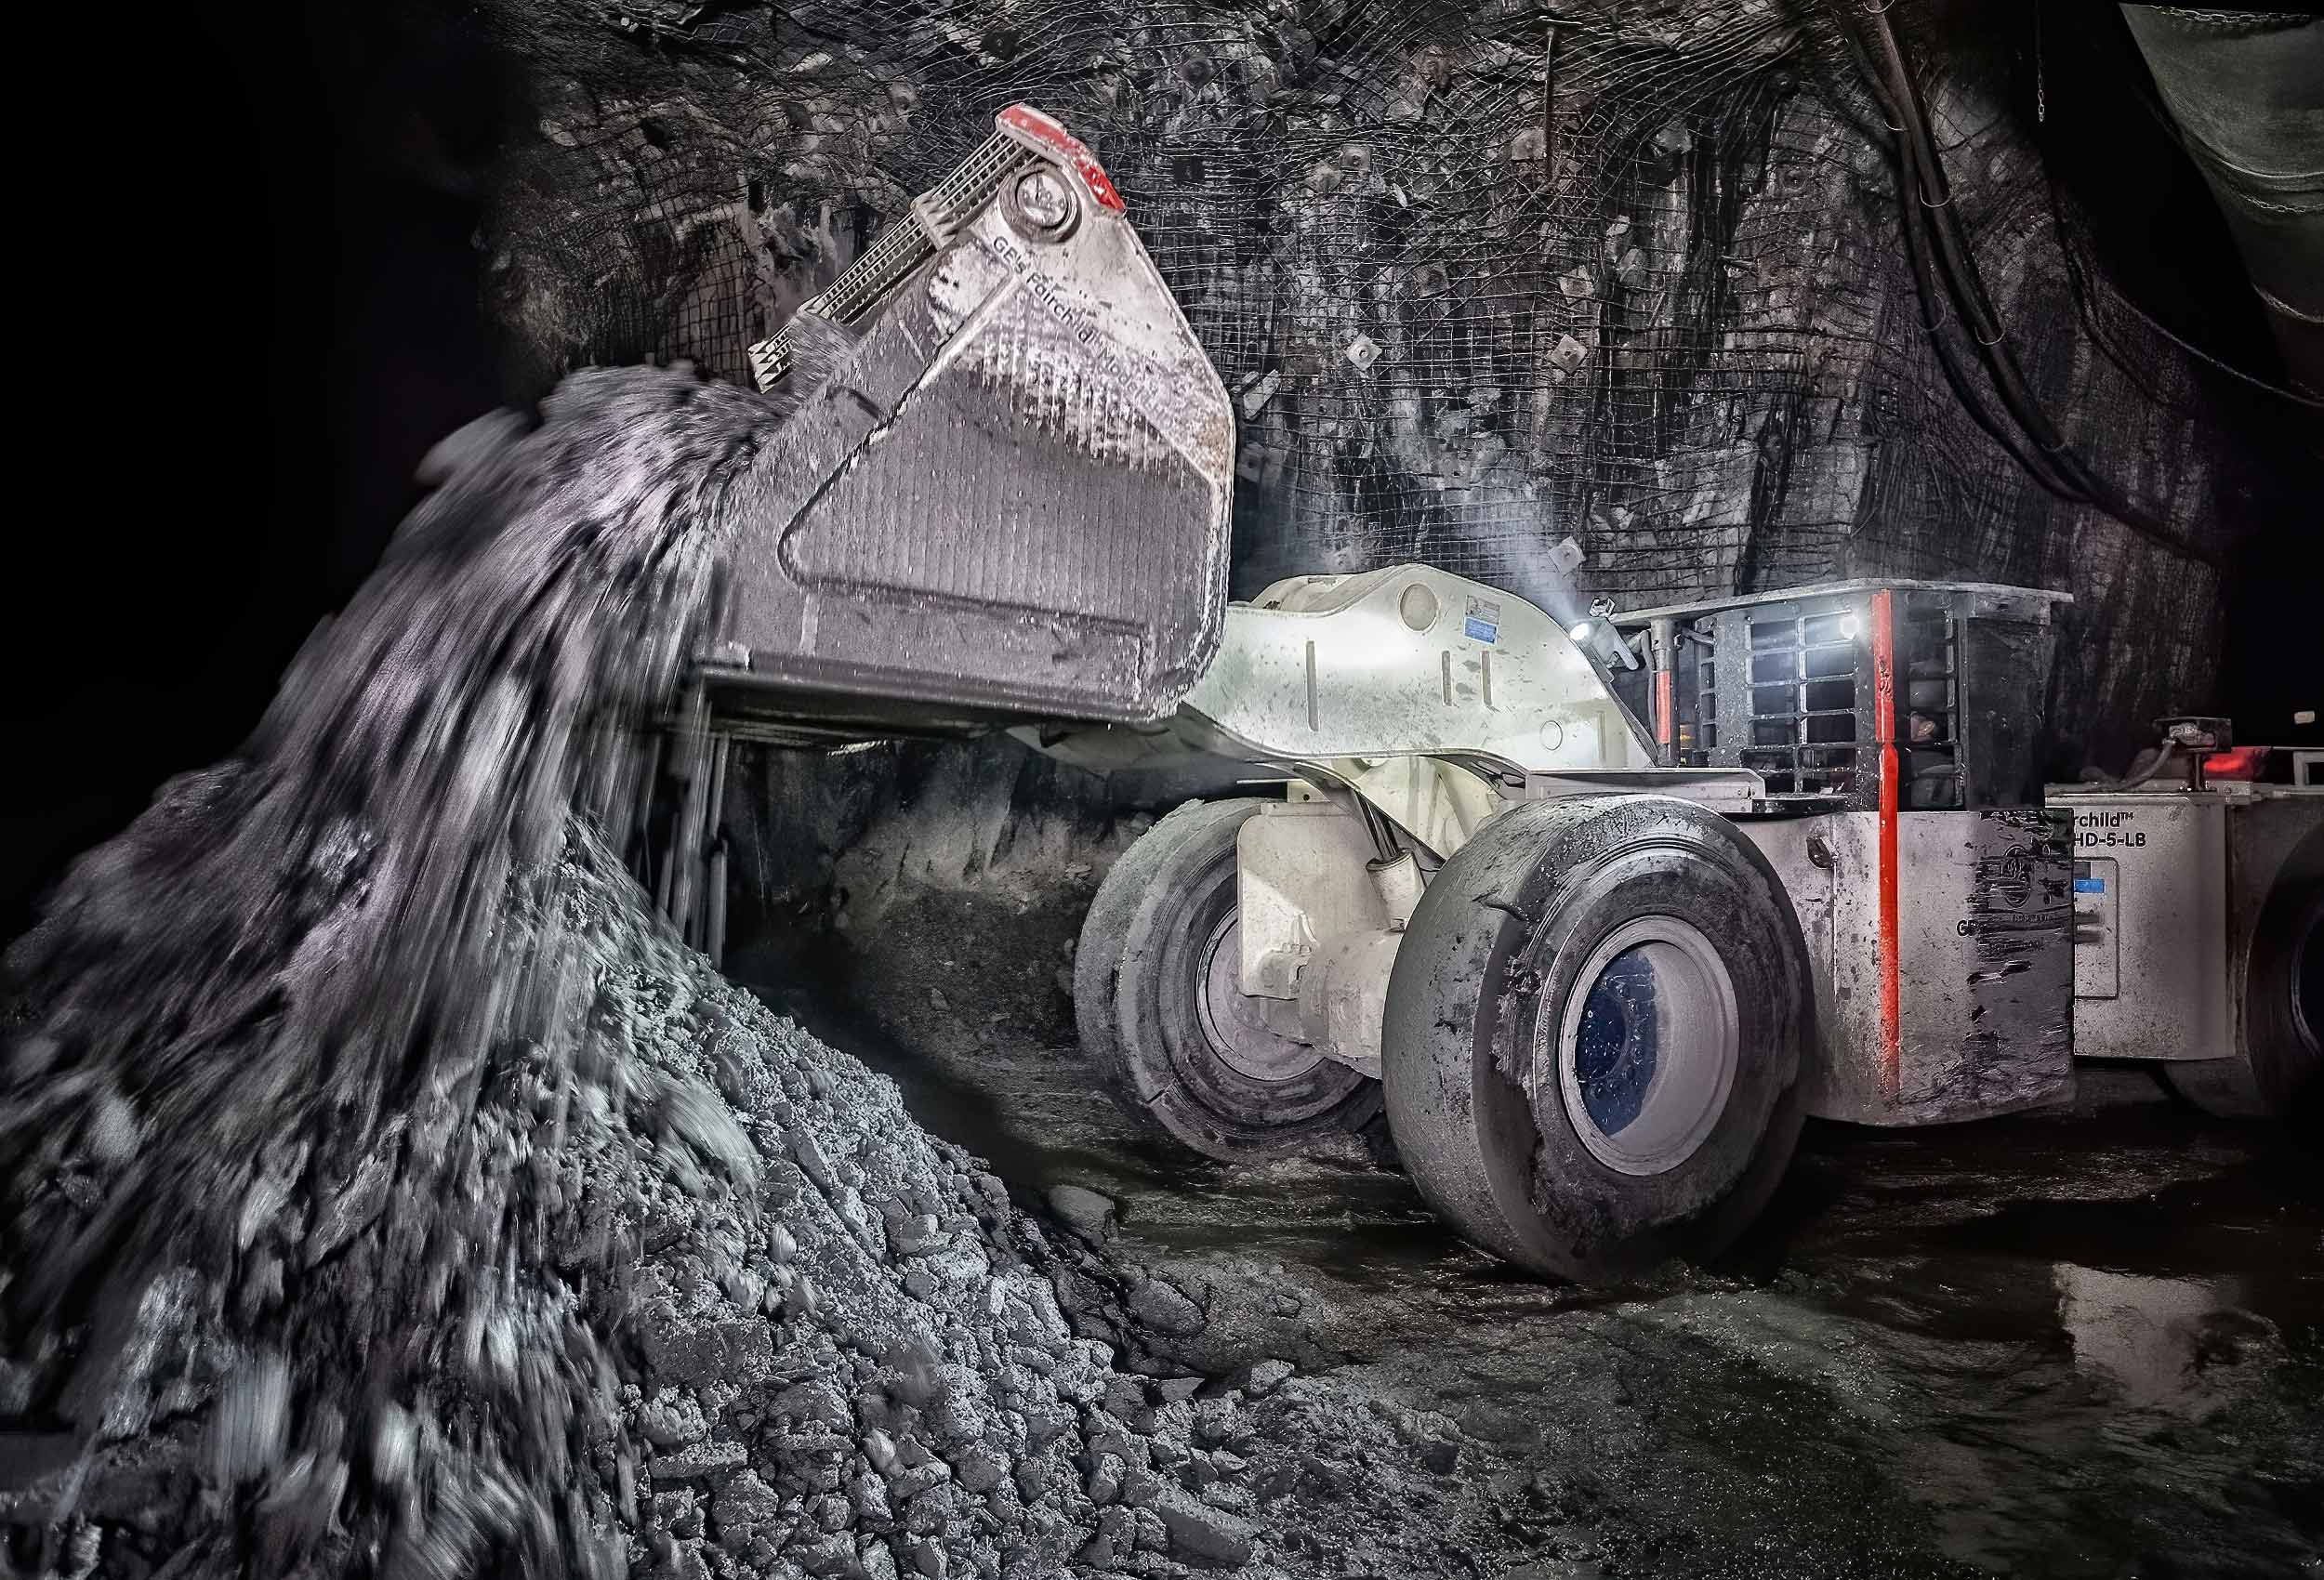 a-pick-up-mining-loader-truck-moves-rocks-during-hard-rock-mining-at-an-iamgold-mine-in-rouyn-noranda-quebec-canada